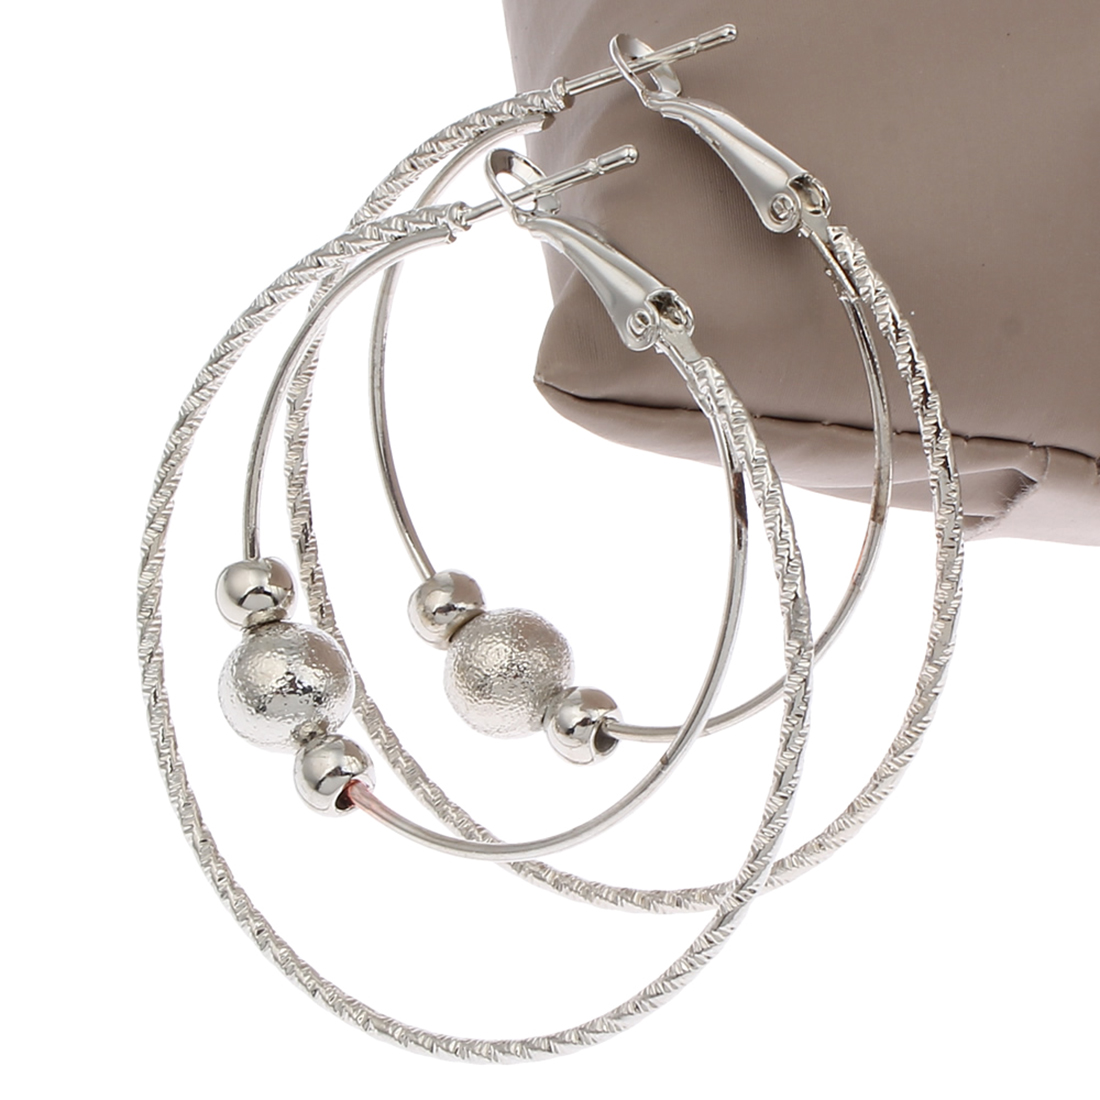 2017 New Arrival jewelry silver hoop earrings hot sale fashion women Beaded basketball Loop big huge round hoop earrings